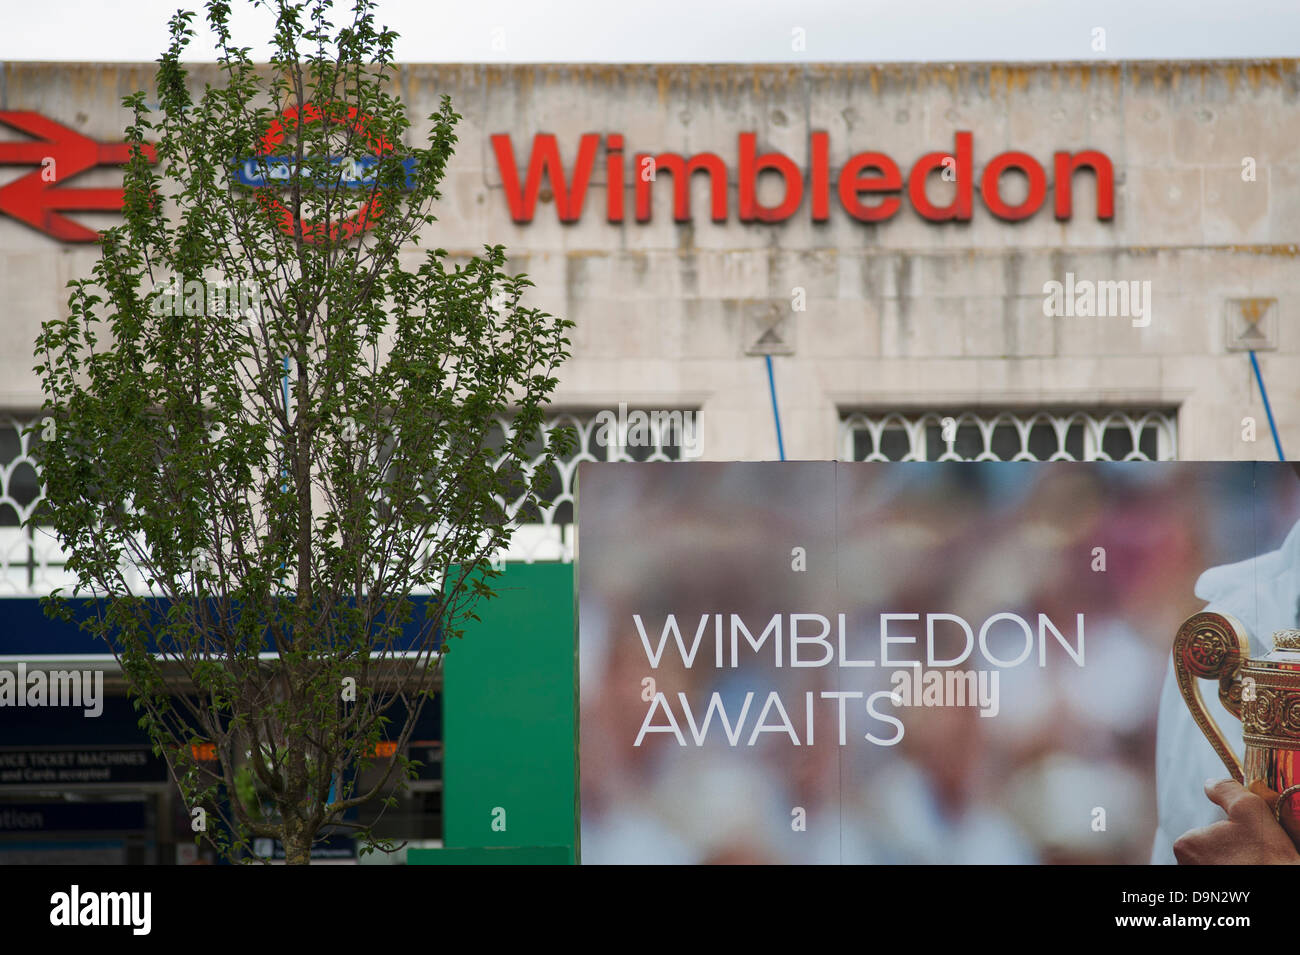 Wimbledon, London, UK. 23 June 2013. Preparations complete in Wimbledon town centre for the start of the Tennis - Stock Image